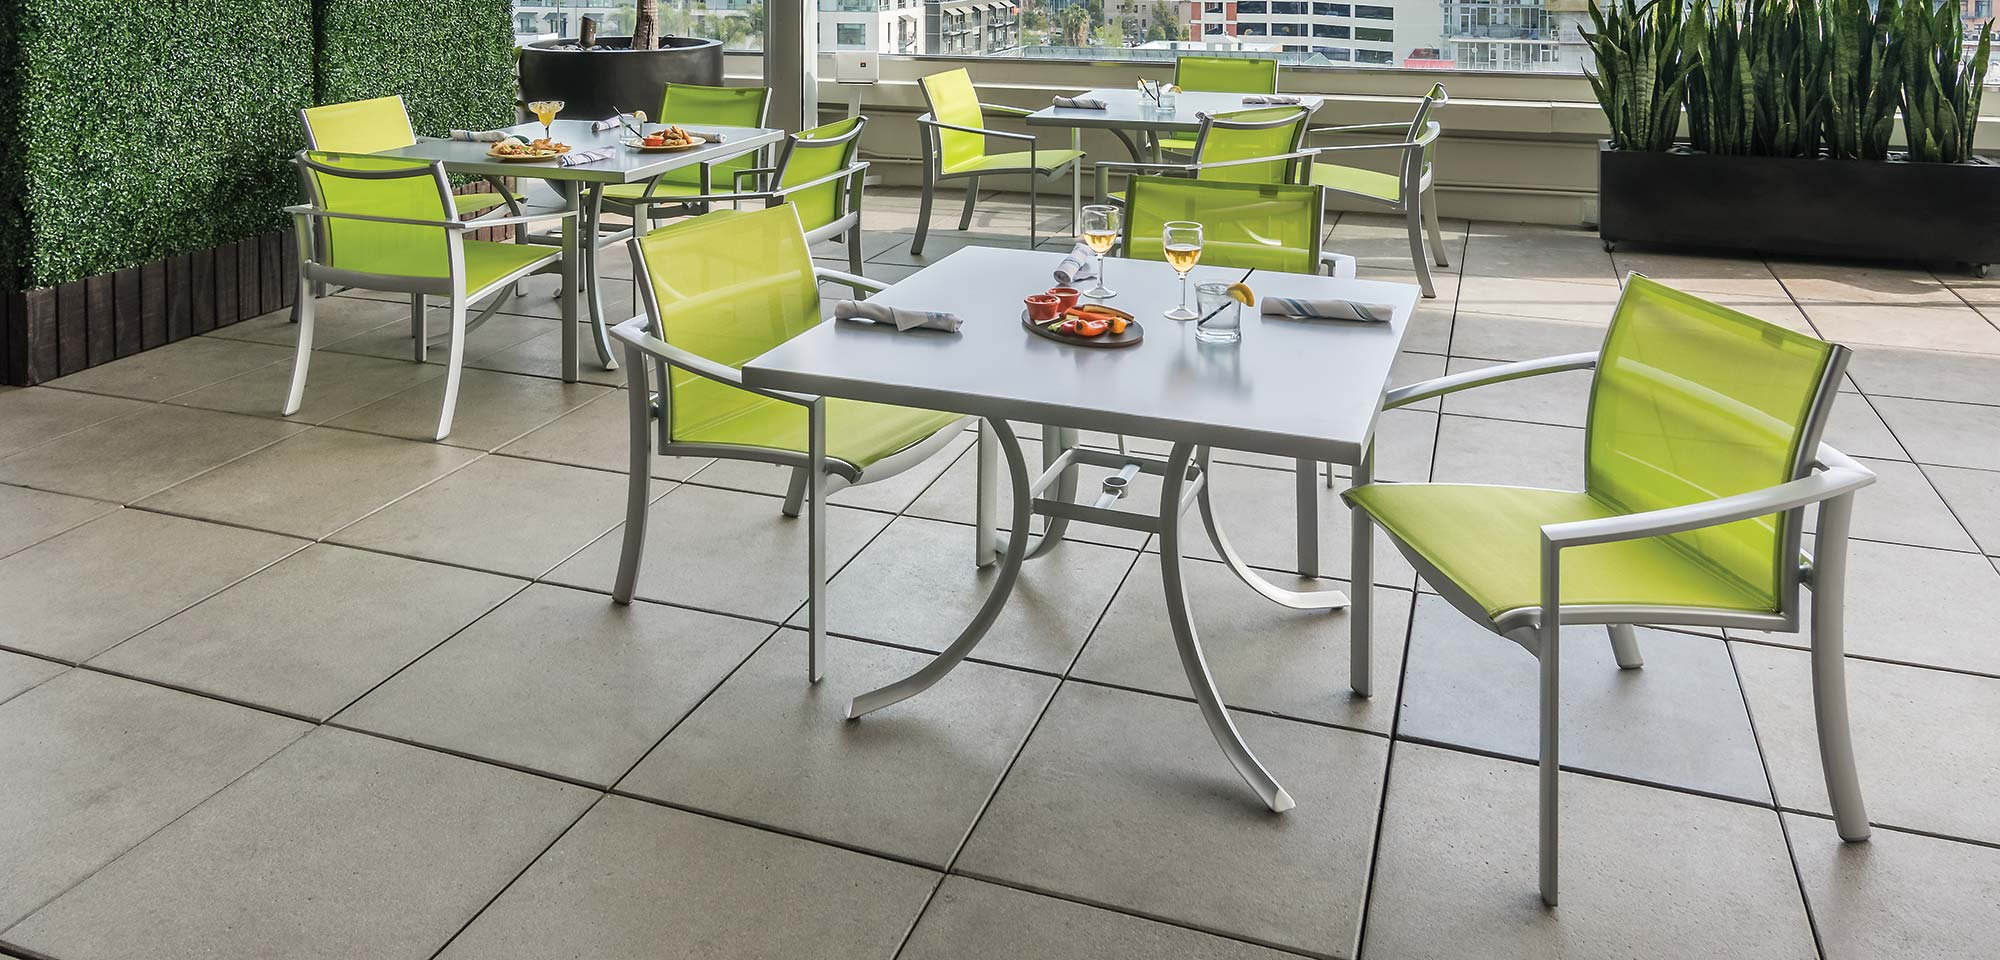 outdoor dining us design chairs commercial tables warehouse cupboard from about furniture and